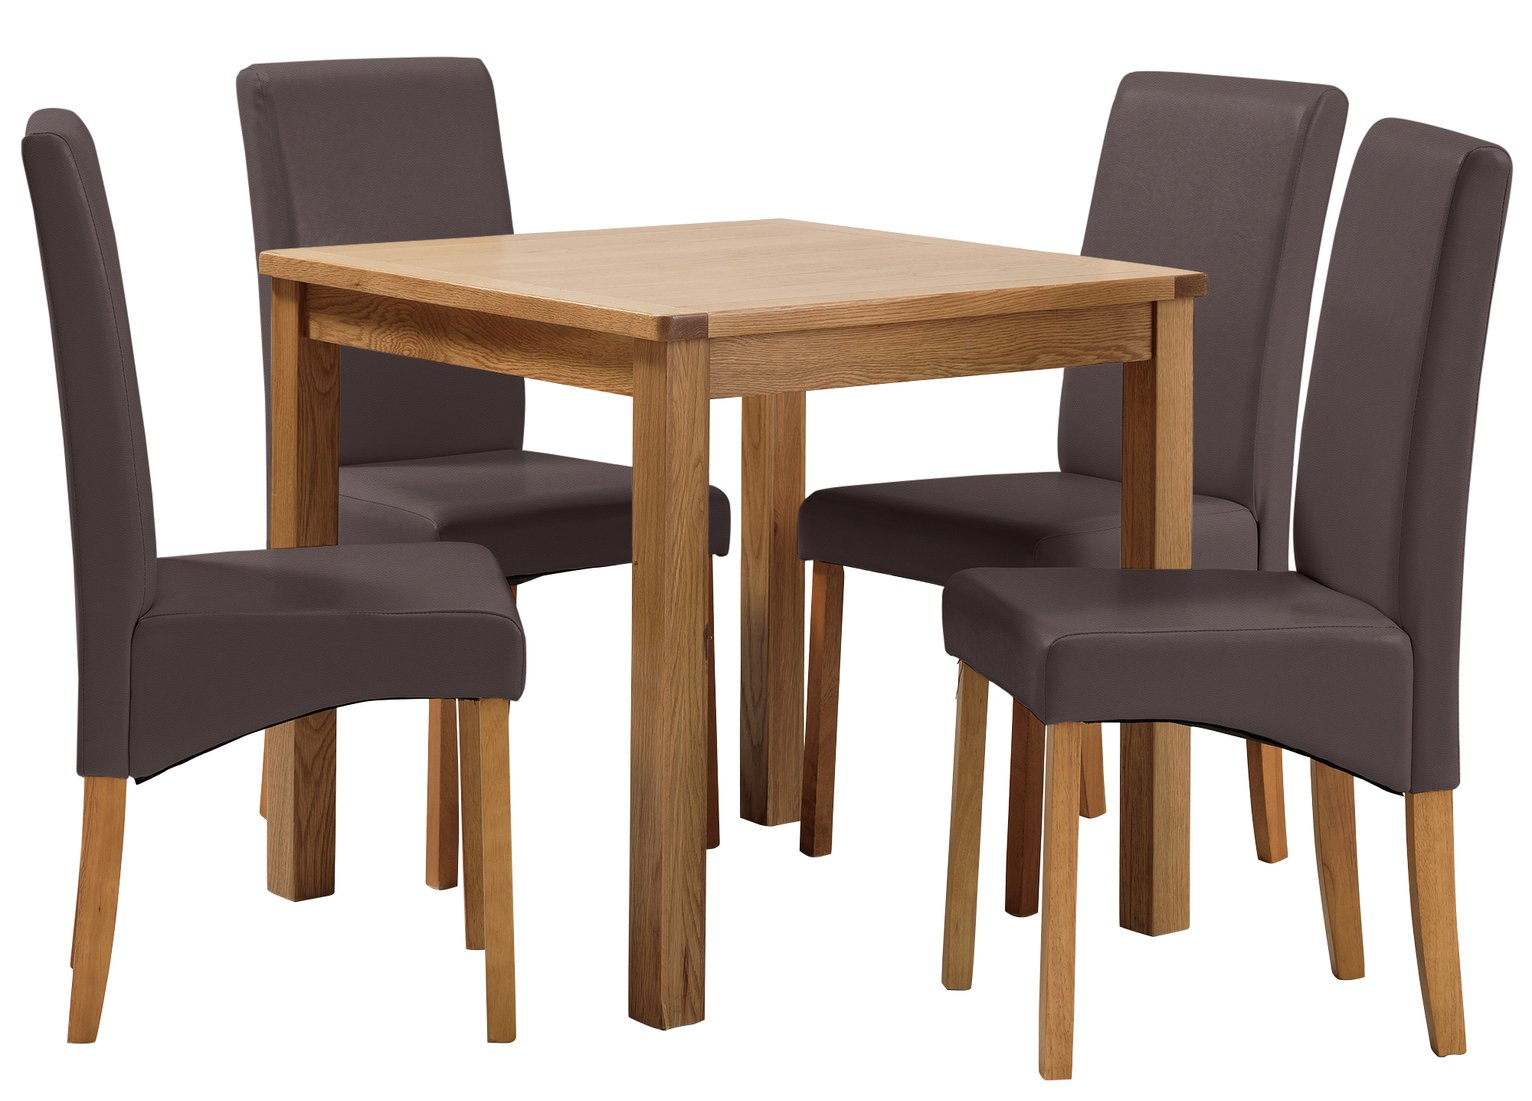 Image of Collection Ashwell Oak Veneer Table & 4 Chairs - Chocolate